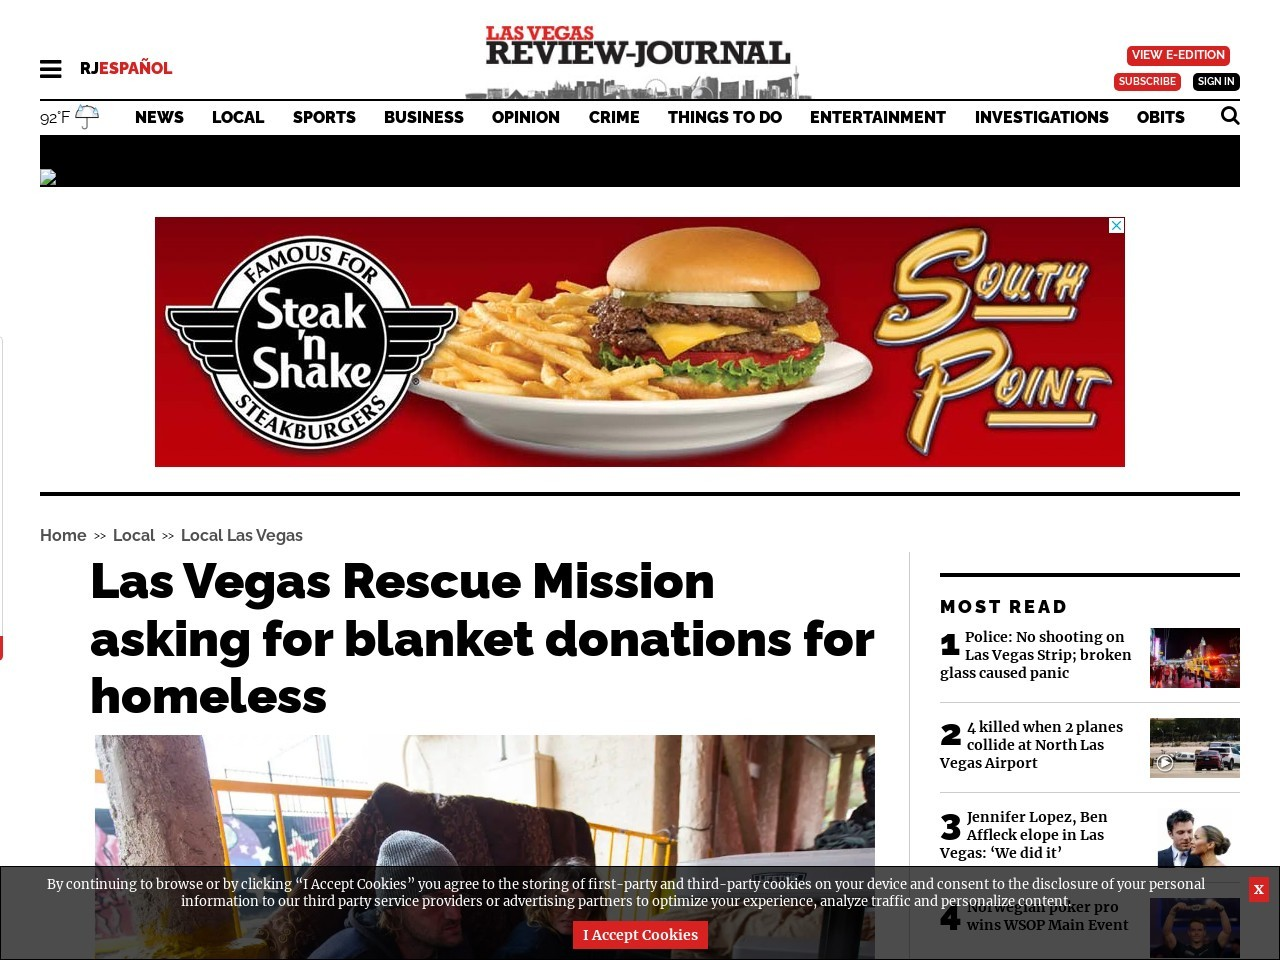 Las Vegas Rescue Mission asking for blanket donations for homeless